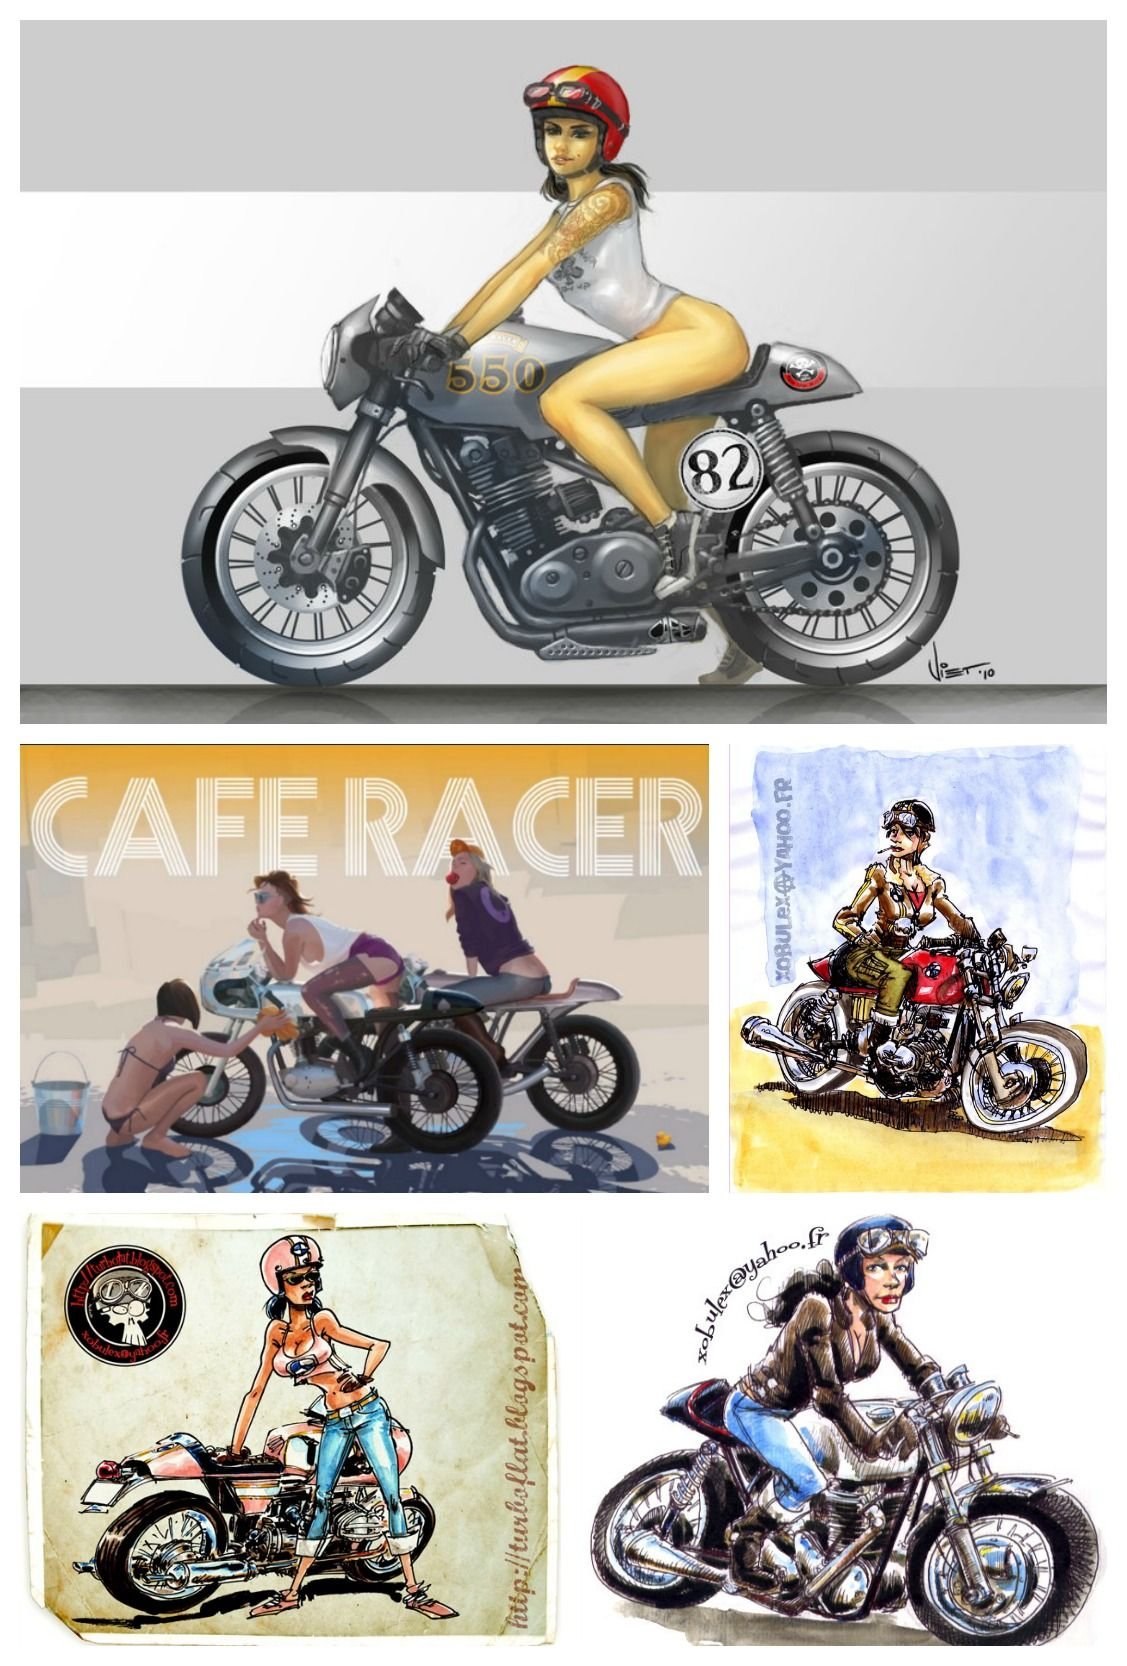 How To Build A Cafe Racer With Images Cafe Racer Cafe Racer